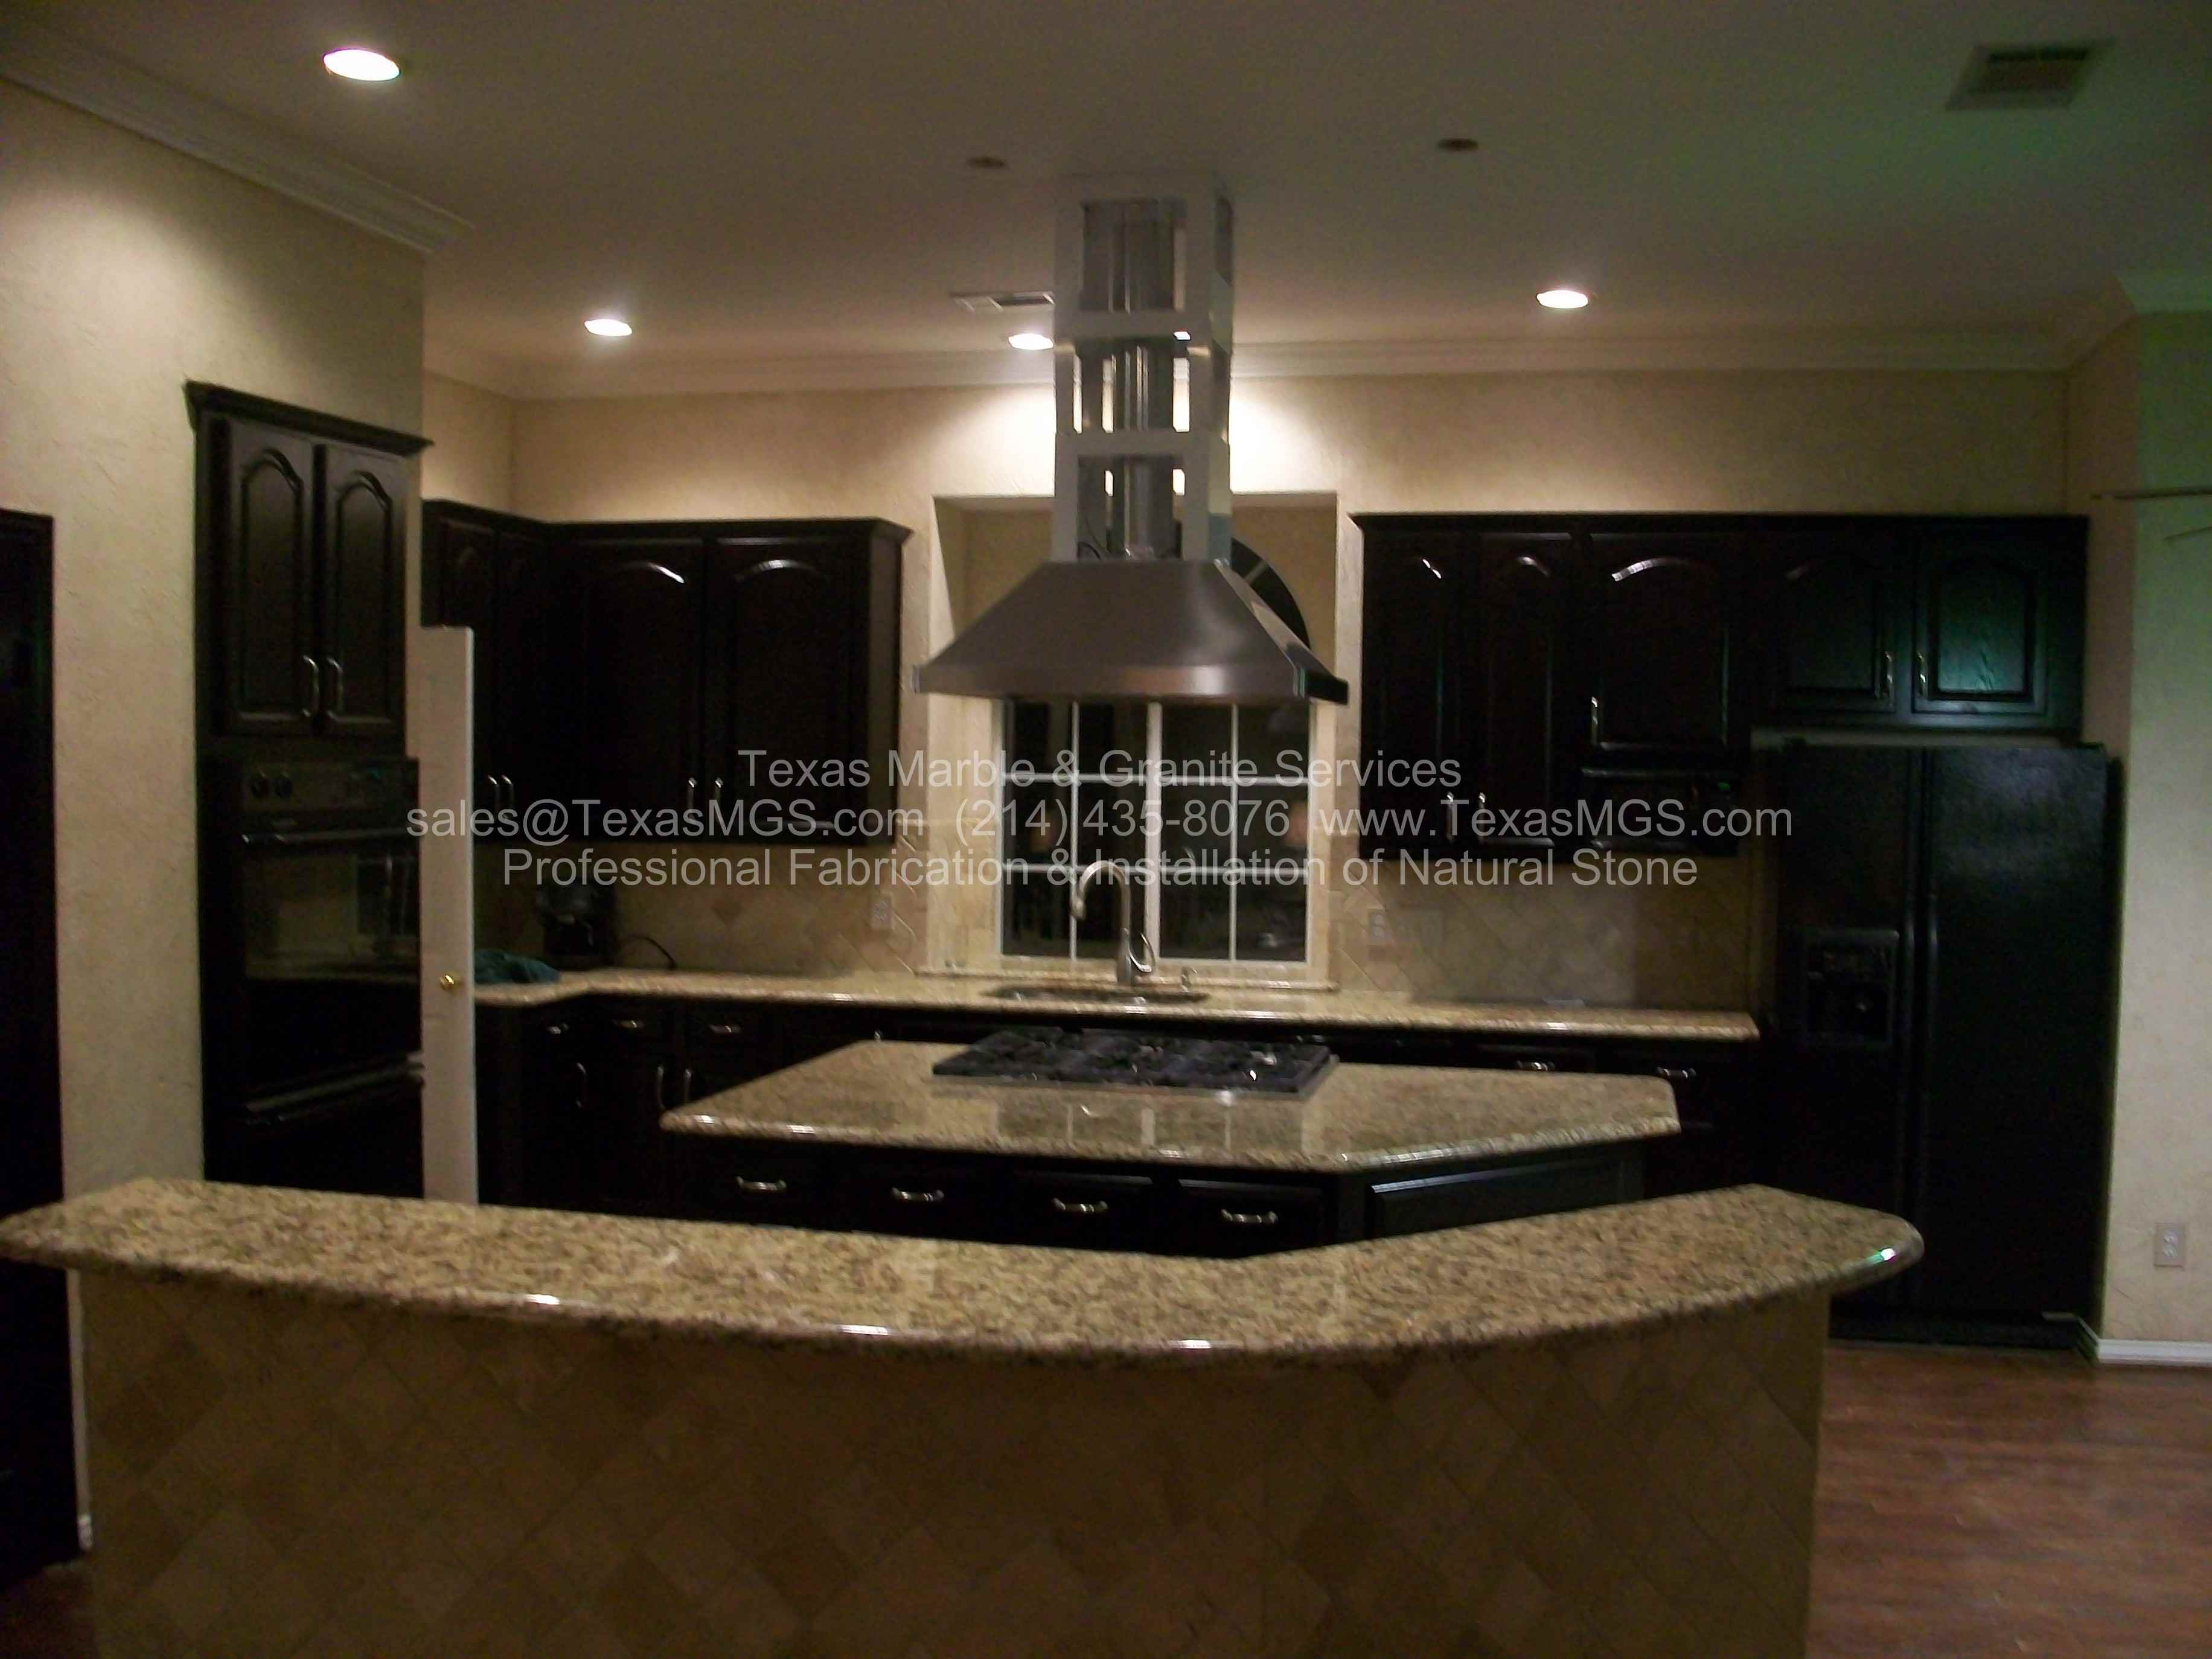 black aristokraft cabinets with marble countertop plus oven and sink for kitchen decor ideas